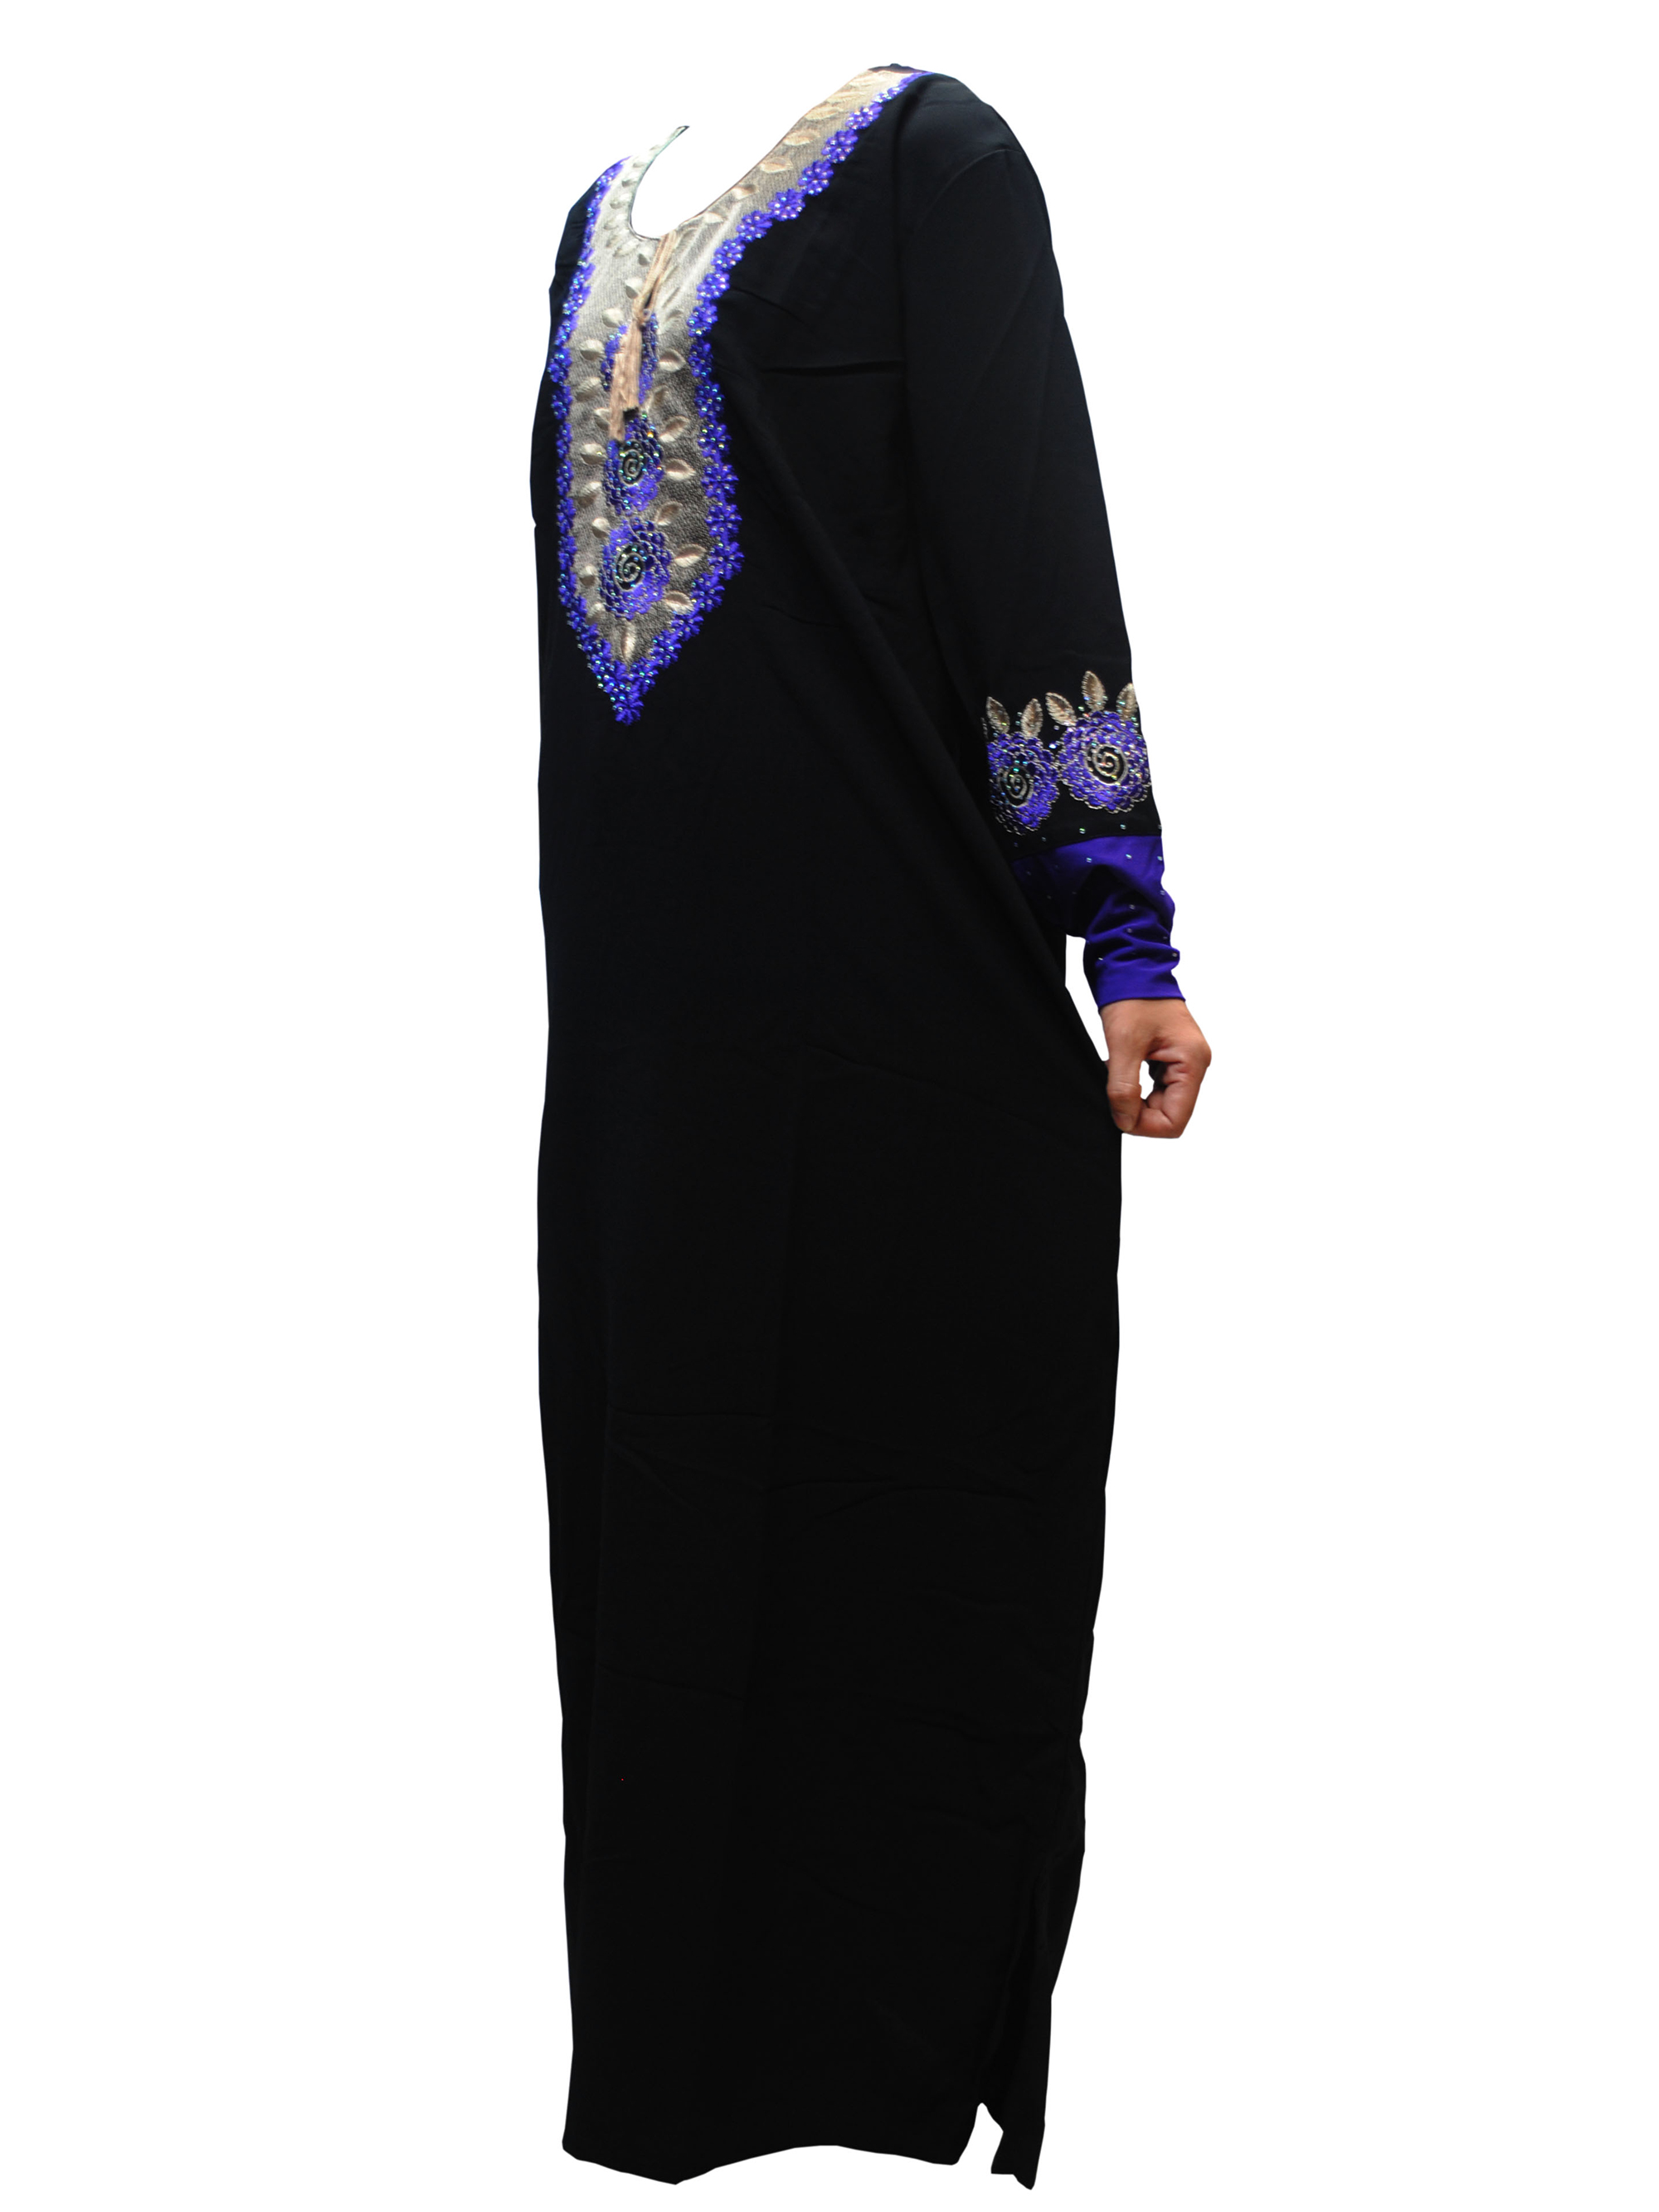 FREE SHIPPING Dubai Lady Abaya Middle East Robe Ramadan Clothes Diamond AndEmbroidery Kaftan Jibab Islamic Muslim Dress Forwomen